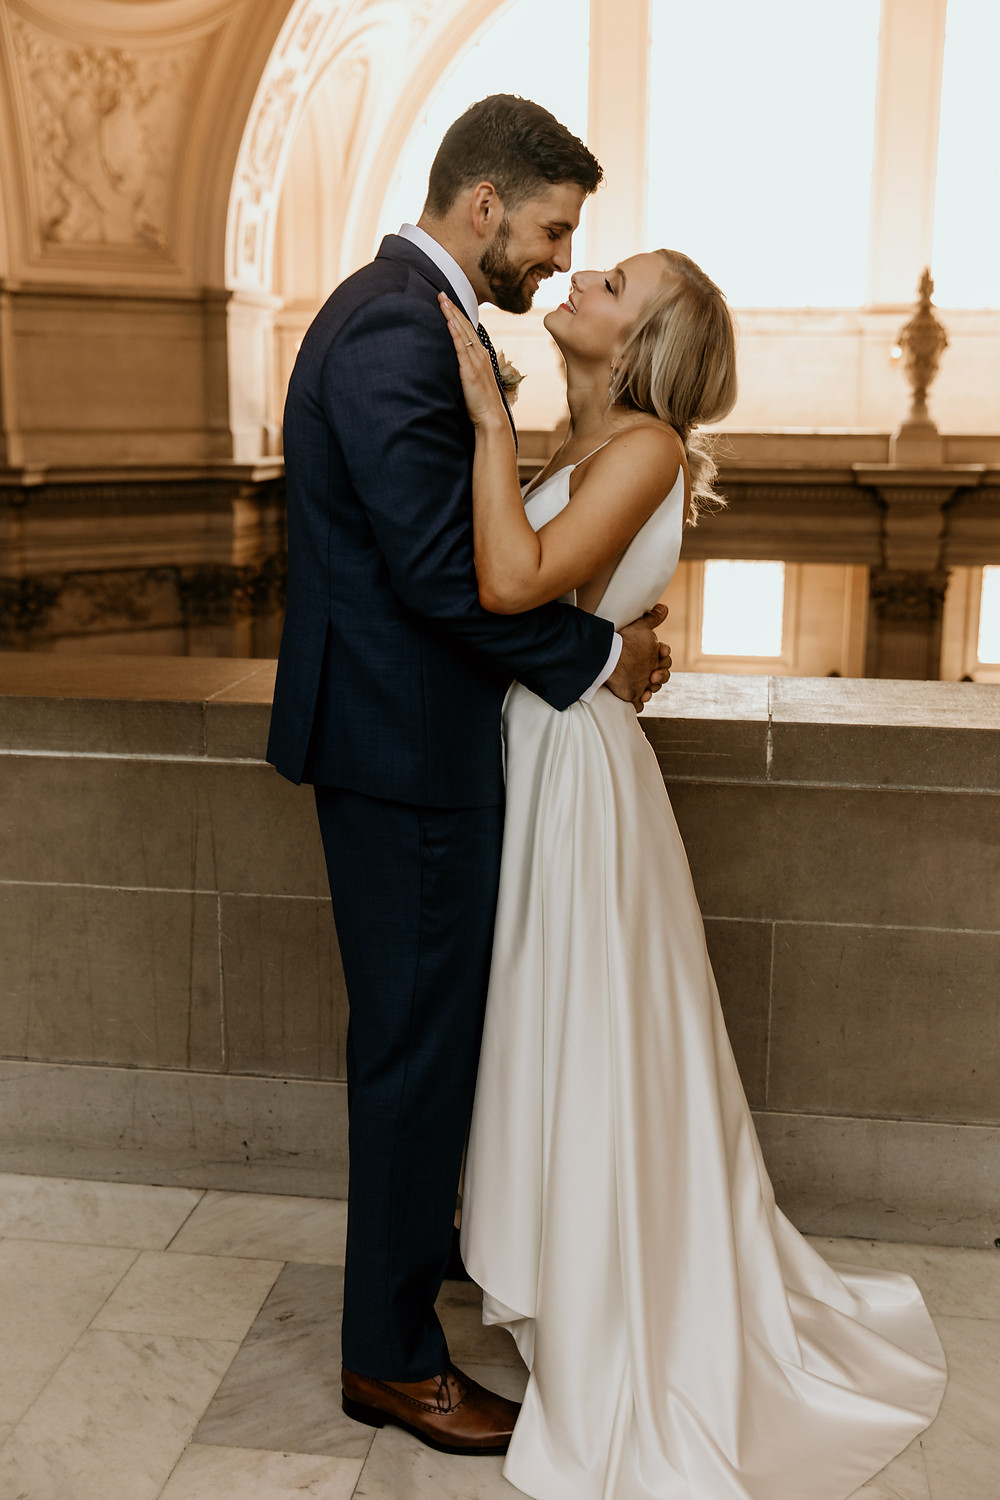 Modern wedding design in traditional architecture of San Francisco City Hall wedding